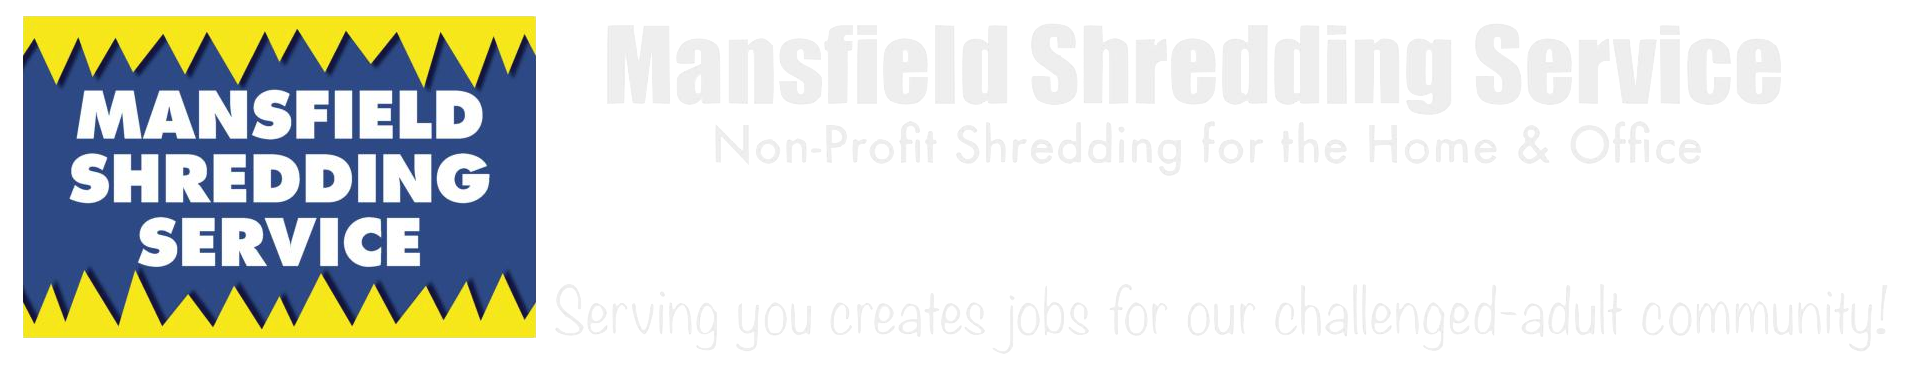 Mansfield Shredding Service